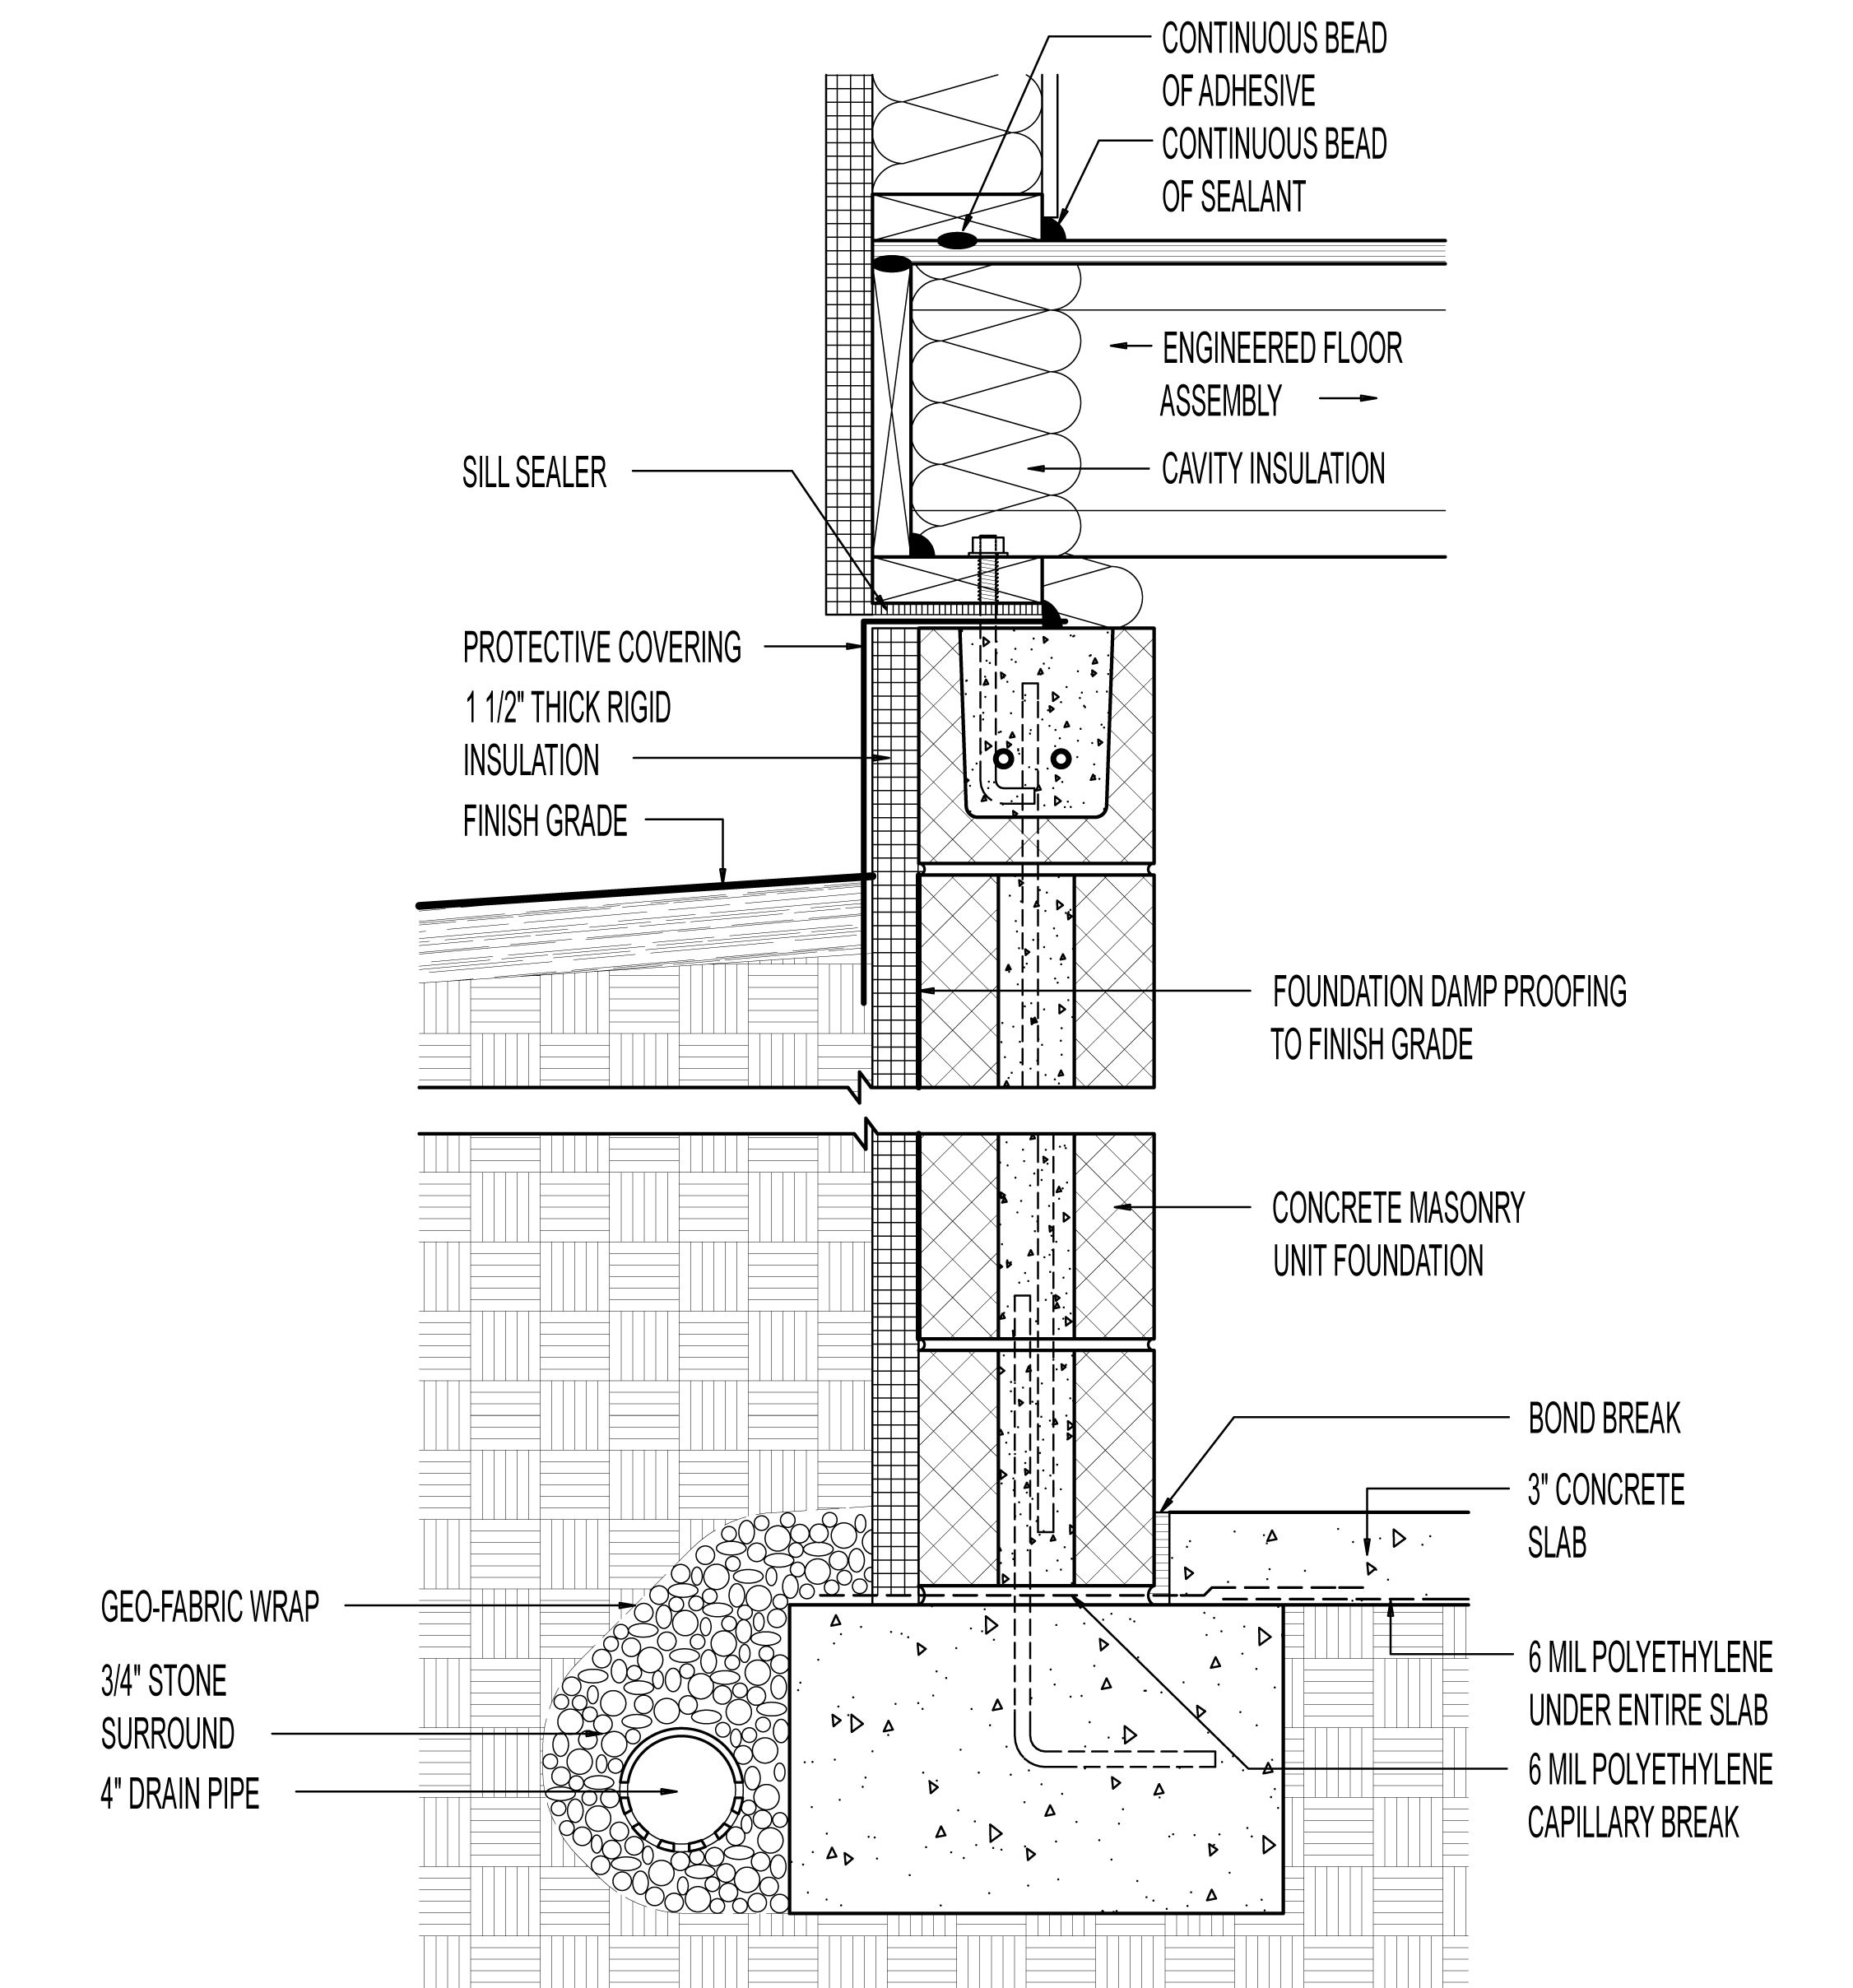 small resolution of with the foundation wall at room temperature the footing acts as a thermal bridge that allows heat to flow from the concrete block wall to the soil